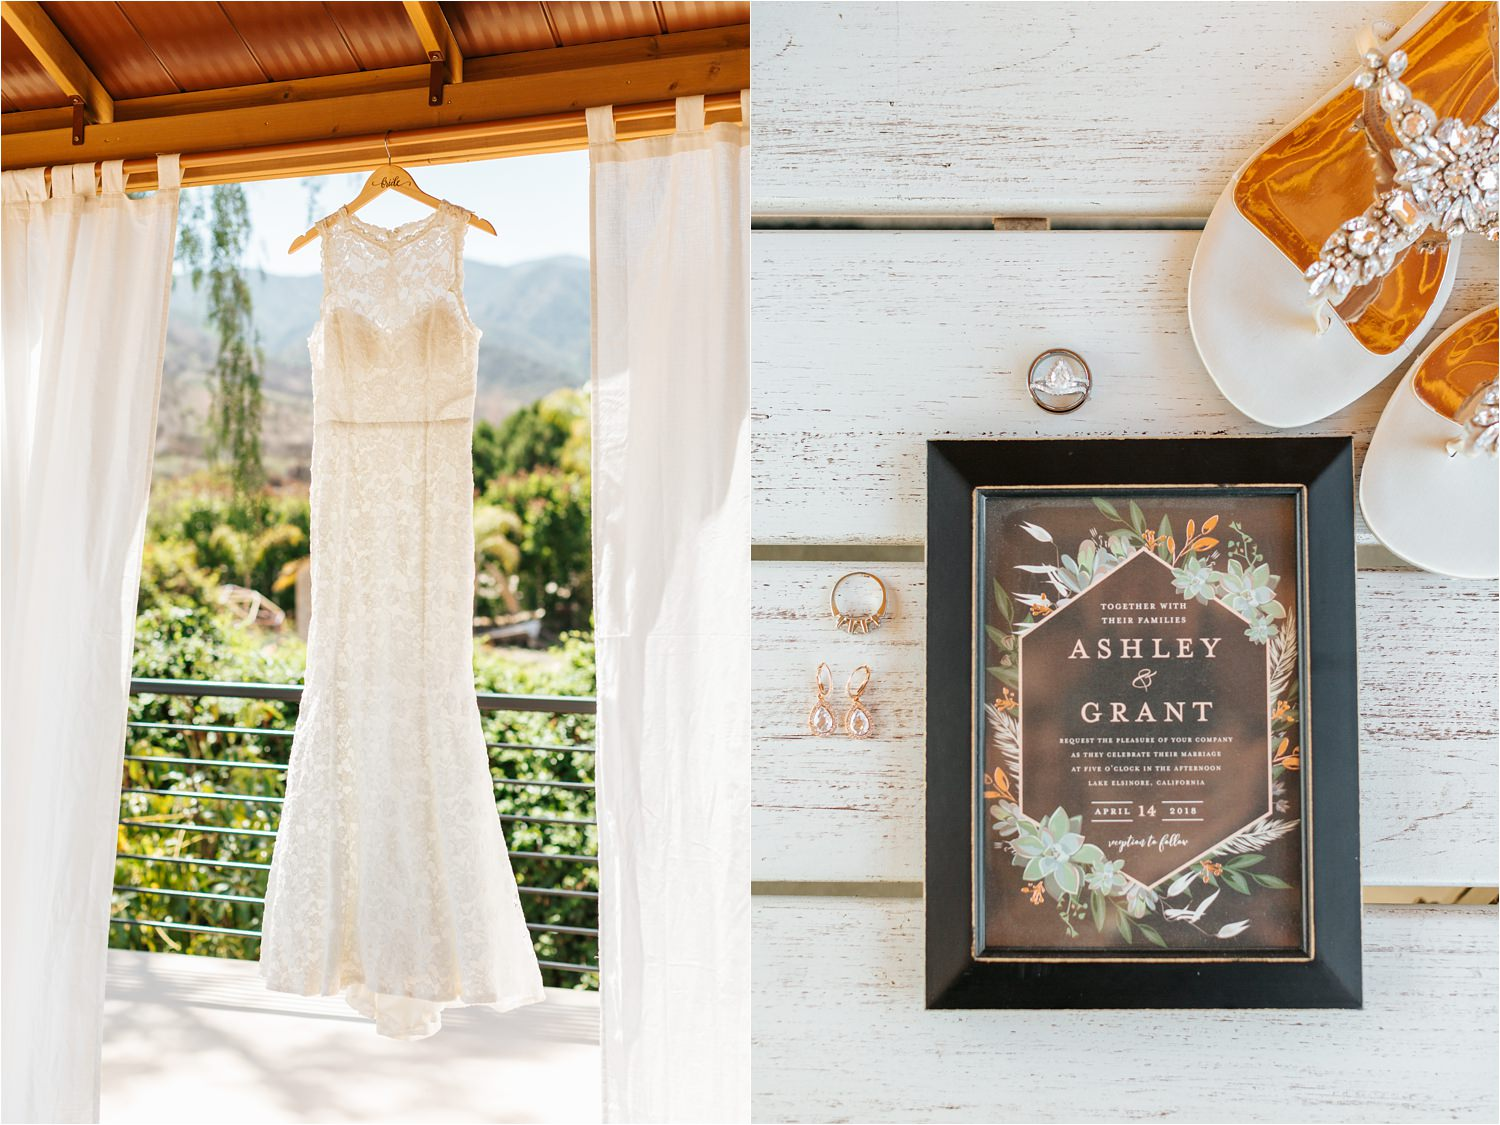 David's Bridal Wedding Dress - Elegant DIY Backyard Wedding - https://brittneyhannonphotography.com